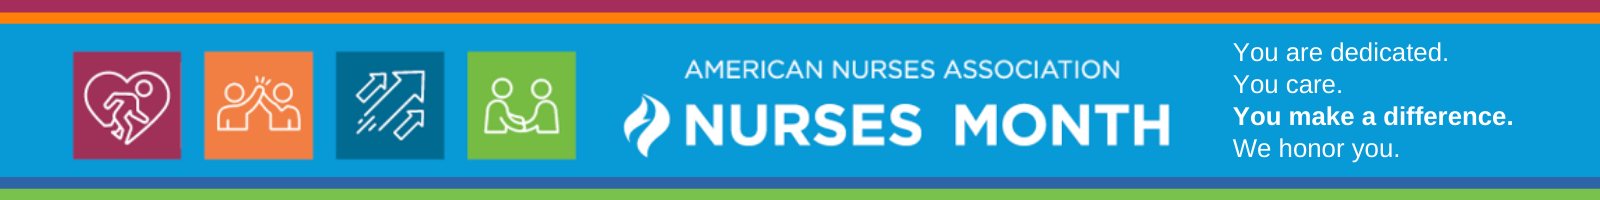 Banner celebrating ANA nurses month